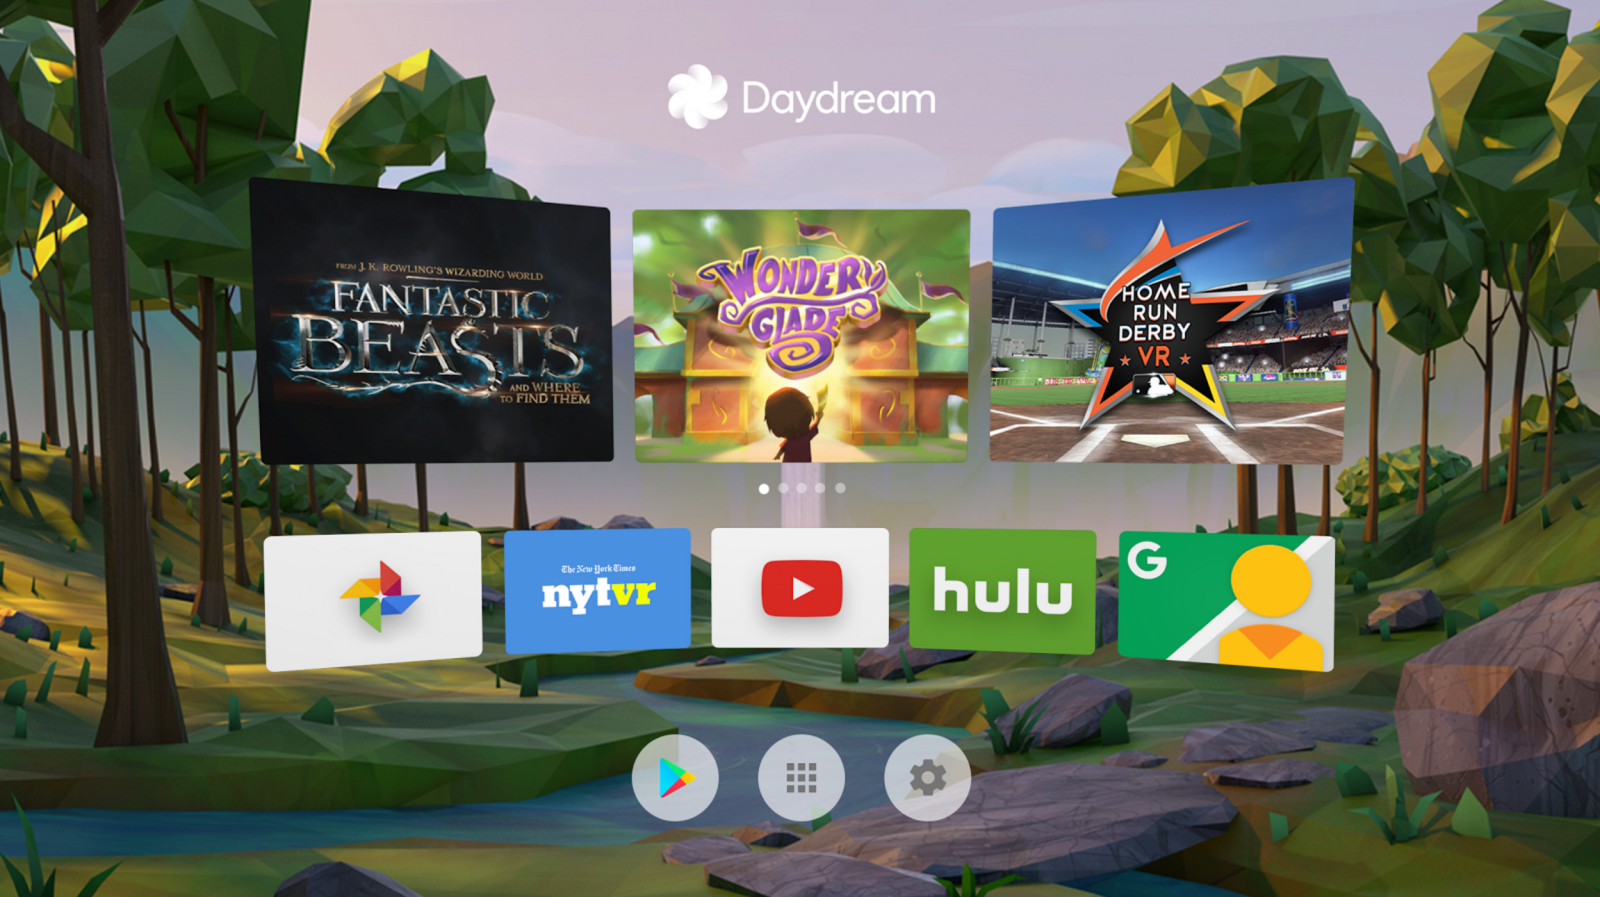 Daydream System UI Home screen with suggested content, app tiles, Play store and settings.